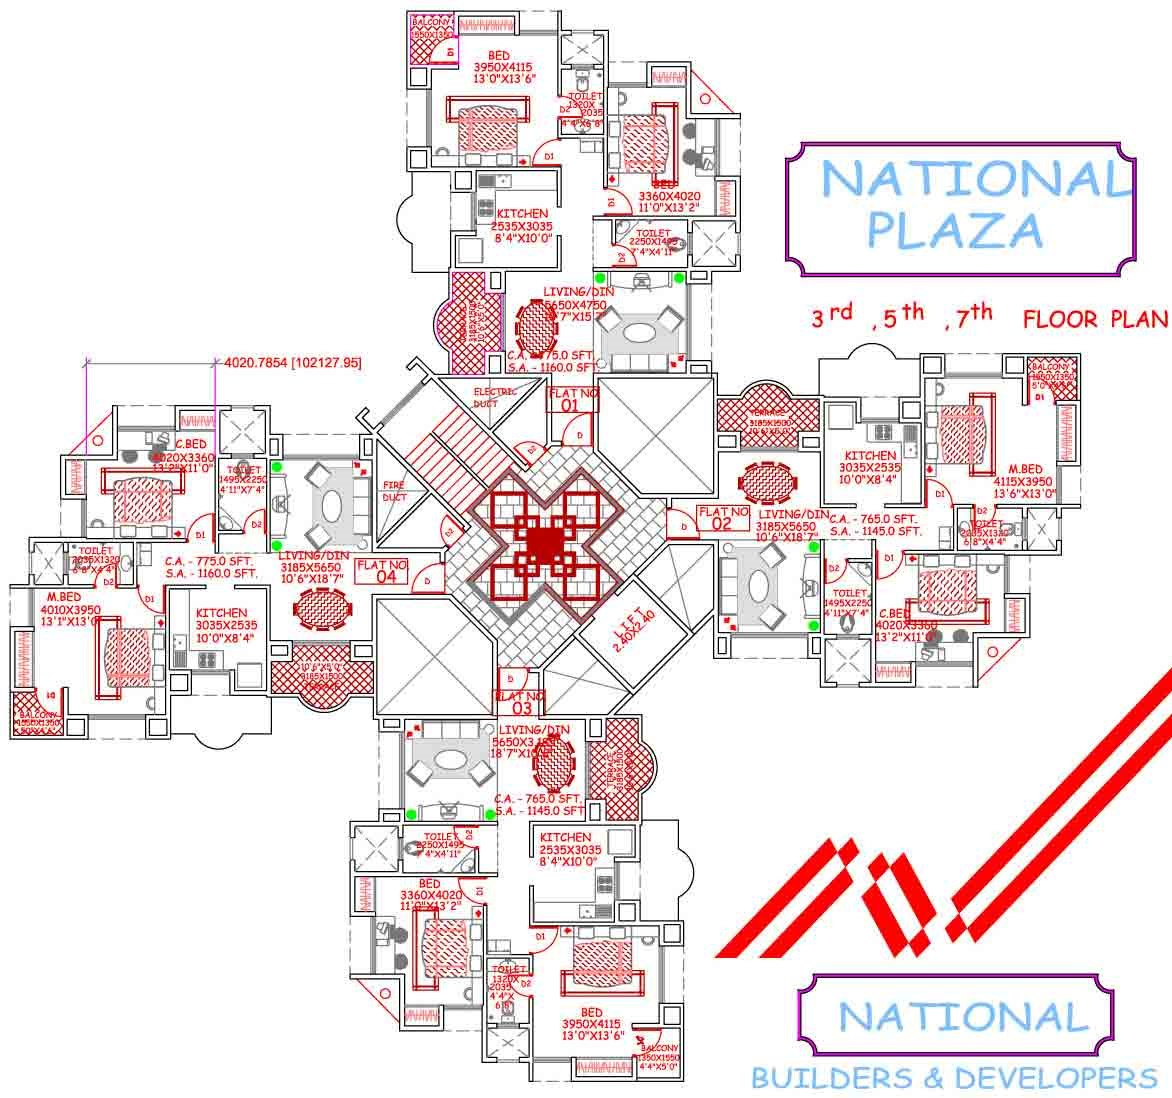 National Plaza 3rd,4th,7th floor plan